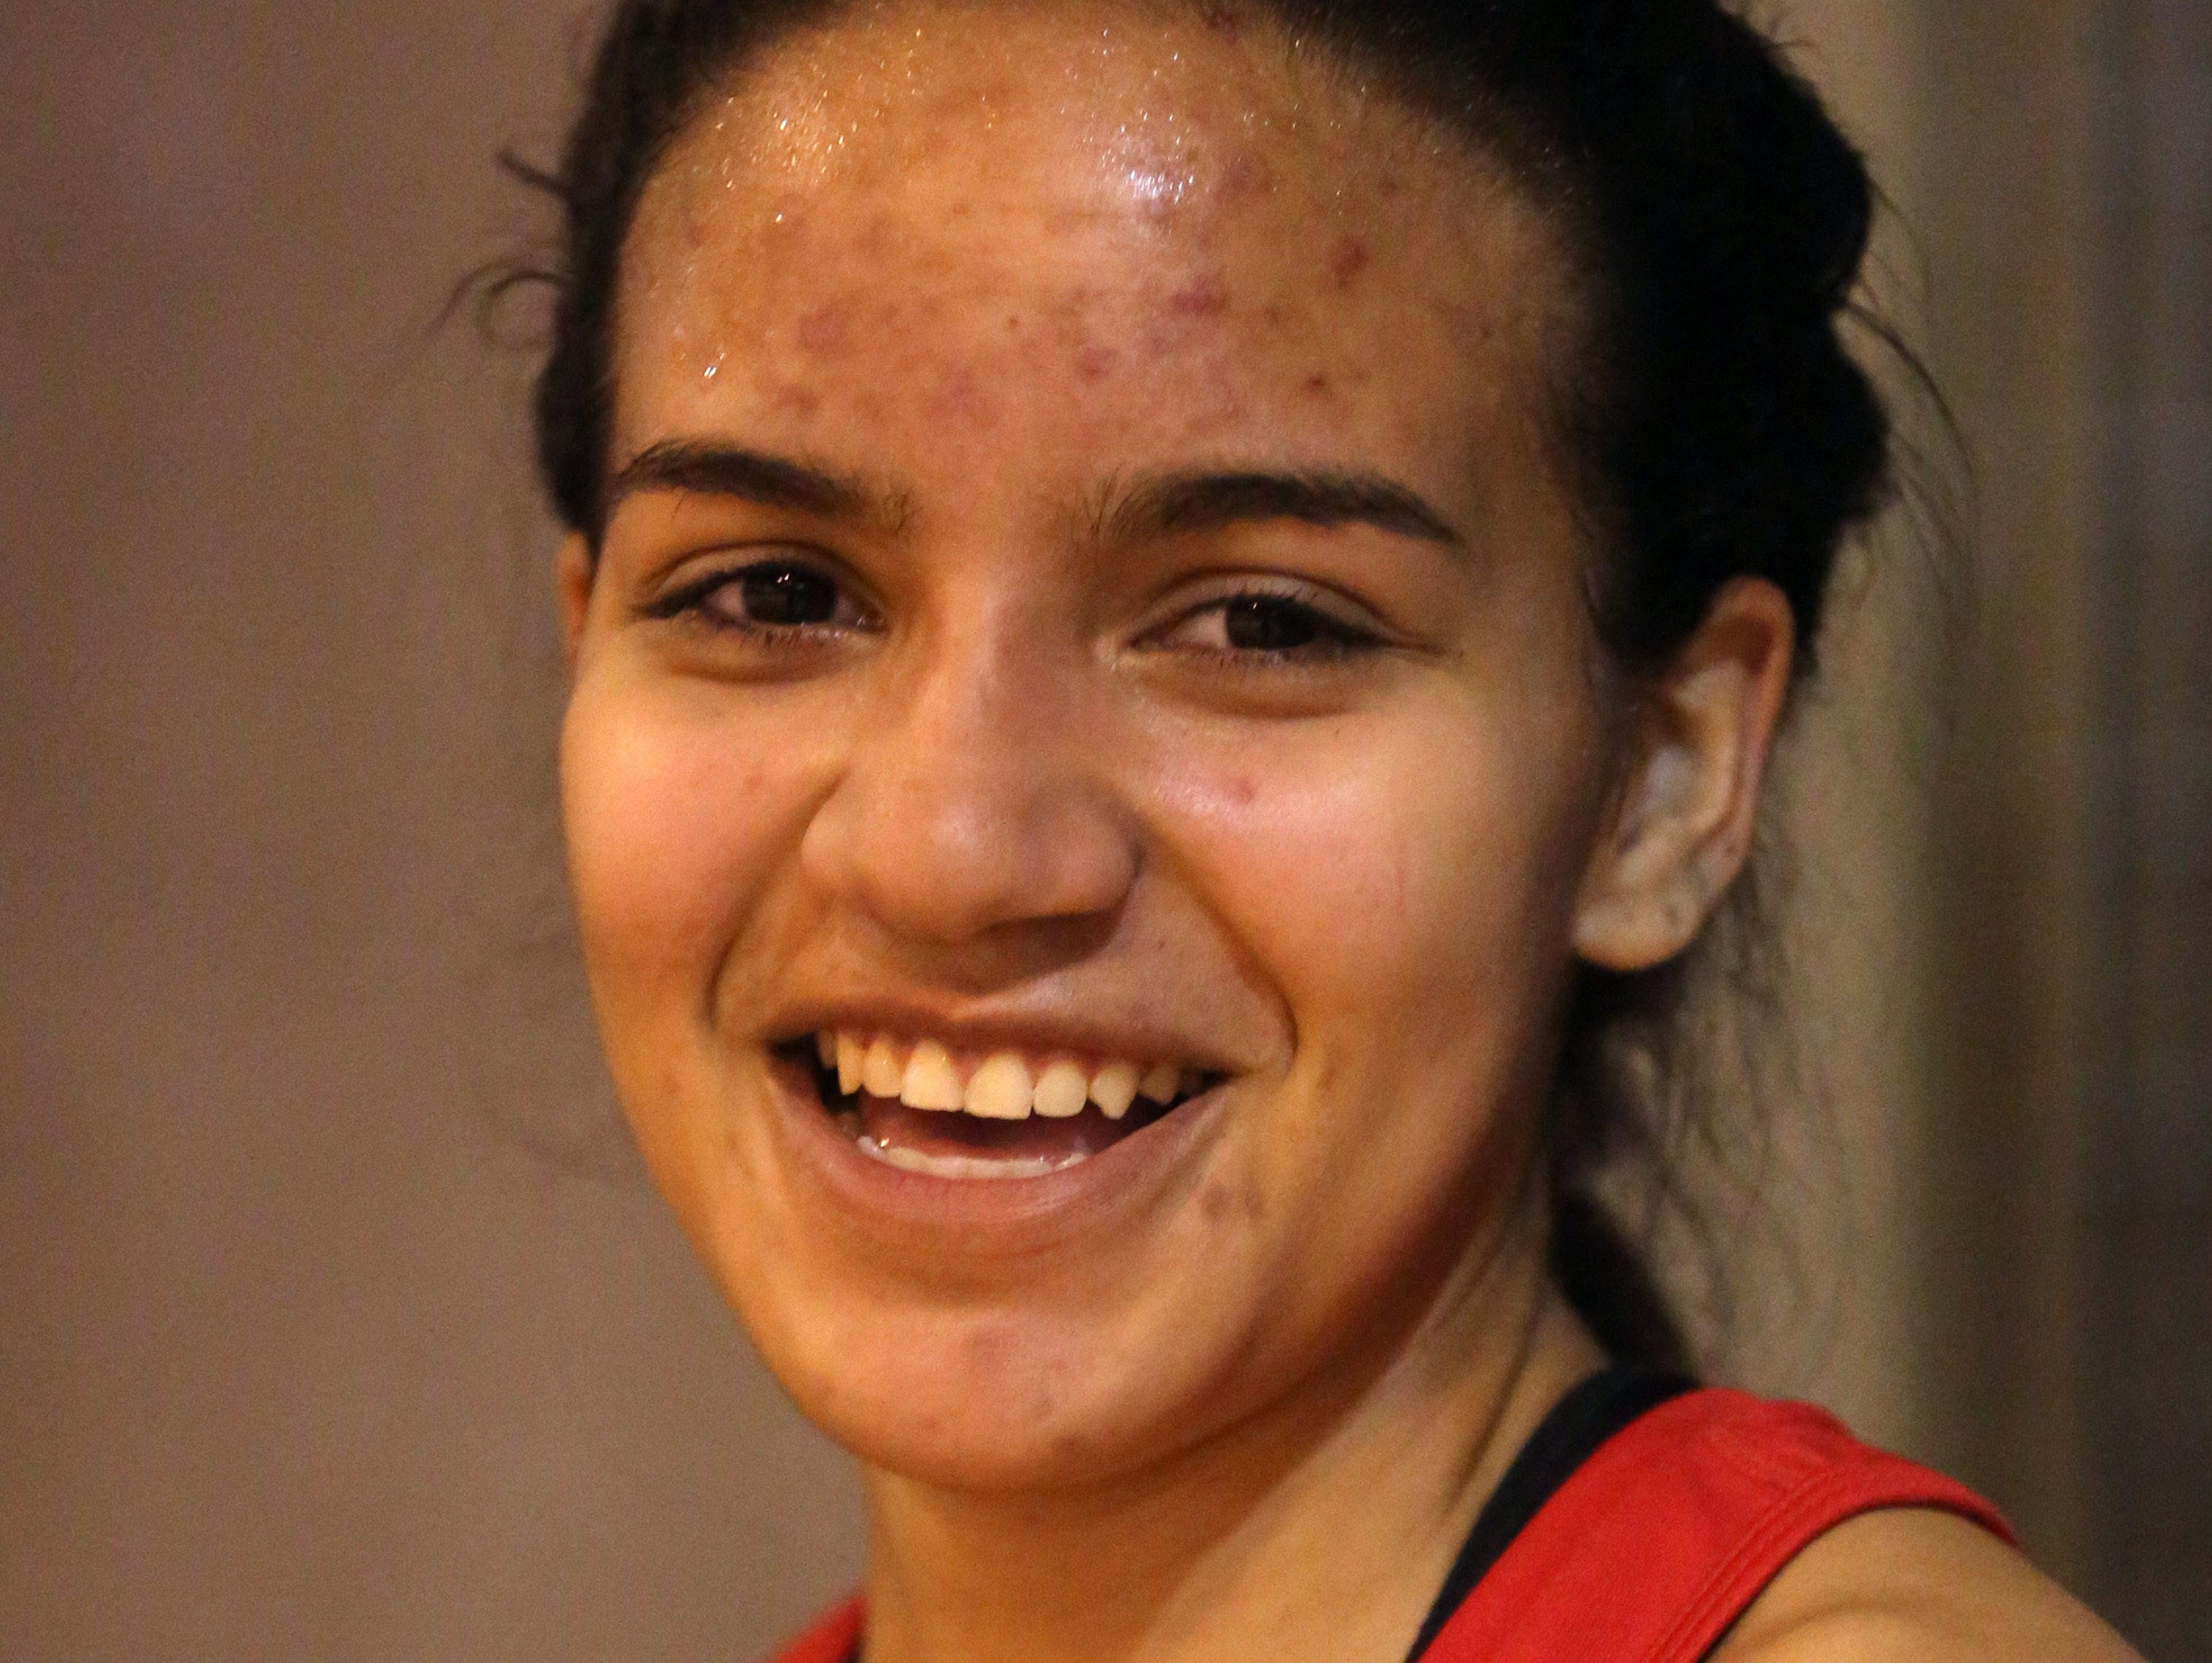 Maria Garcia from North Rockland High School, won the race walk during the Rockland Coaches Invitational indoor track meet, Jan. 6, 2016.